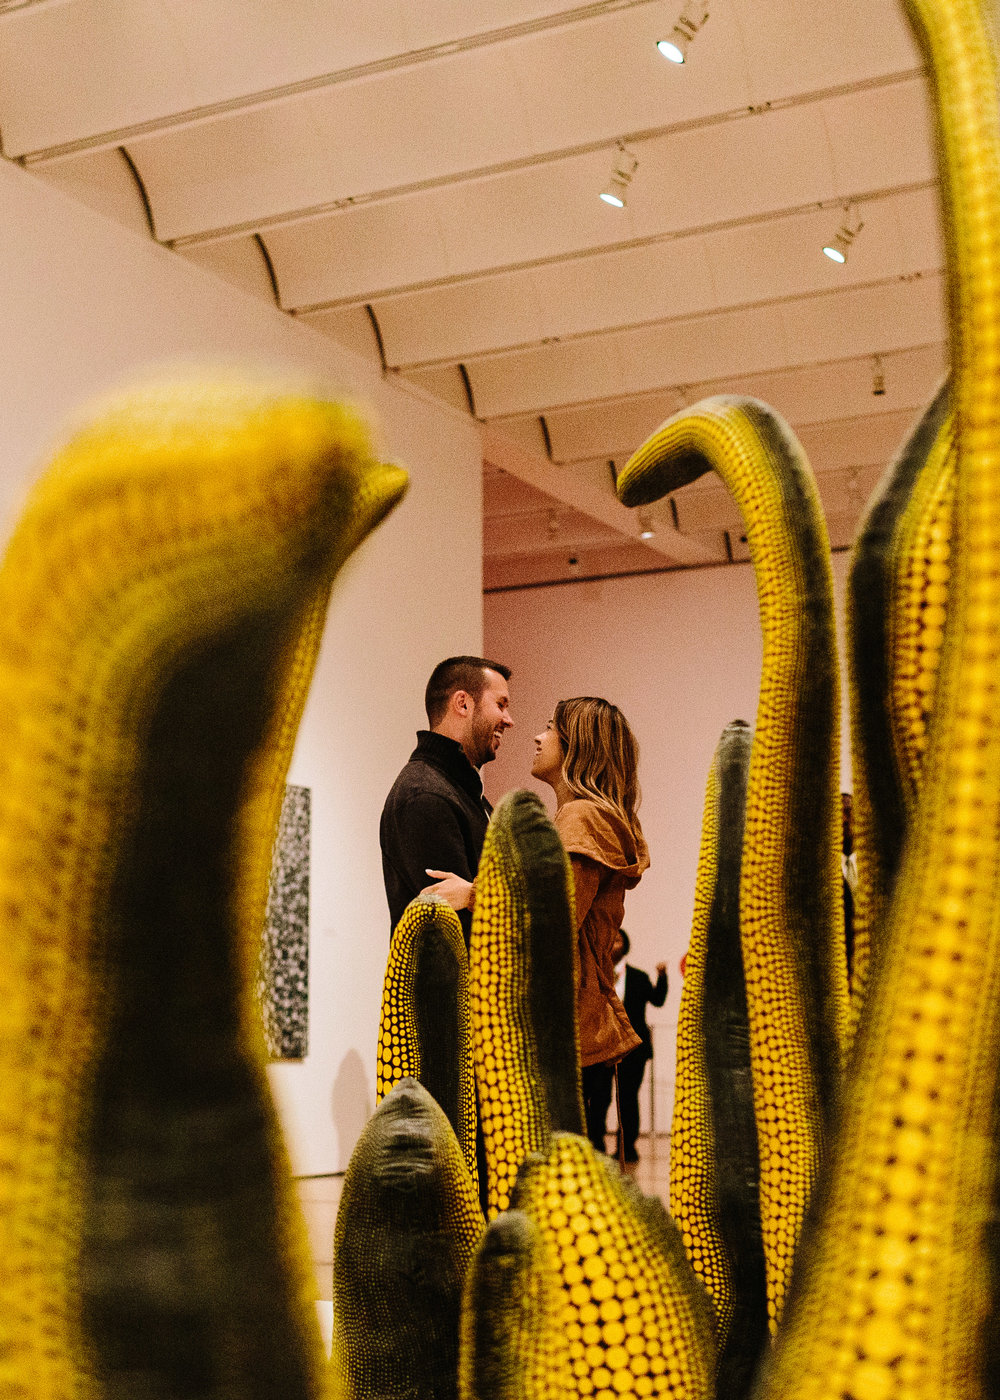 high_museum_infinity_mirrors_Yayoi_Kusama_proposal_amazing_atlanta_real_couple_engagement_ideas_epic_1073.jpg